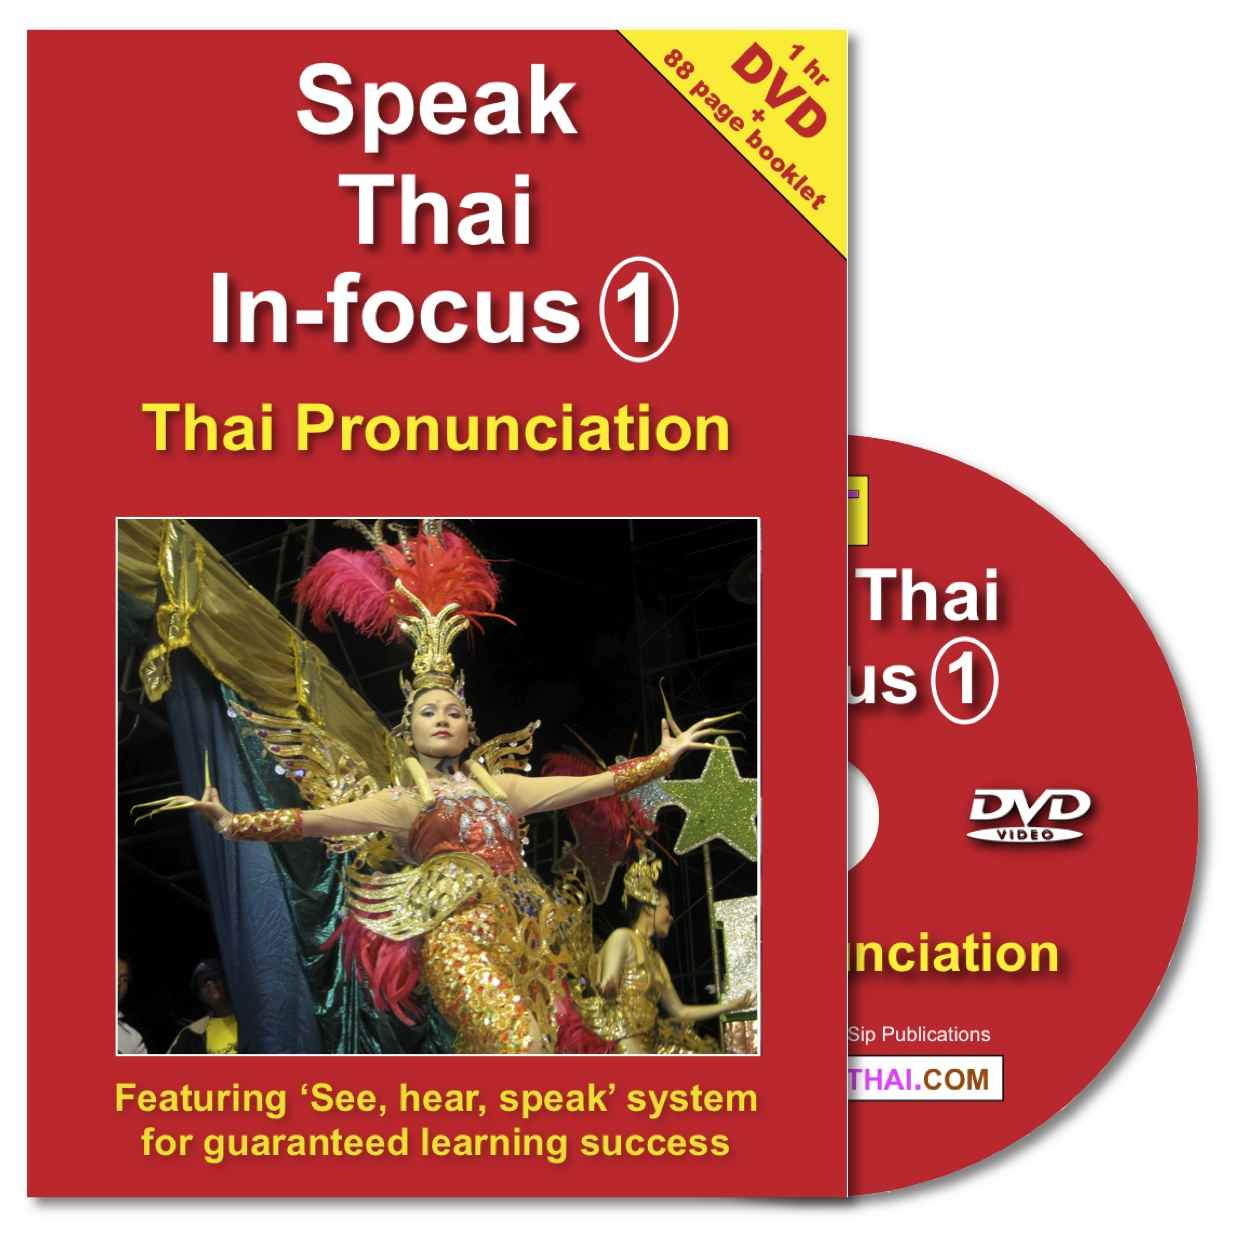 In-focus 1: Thai Pronunciation